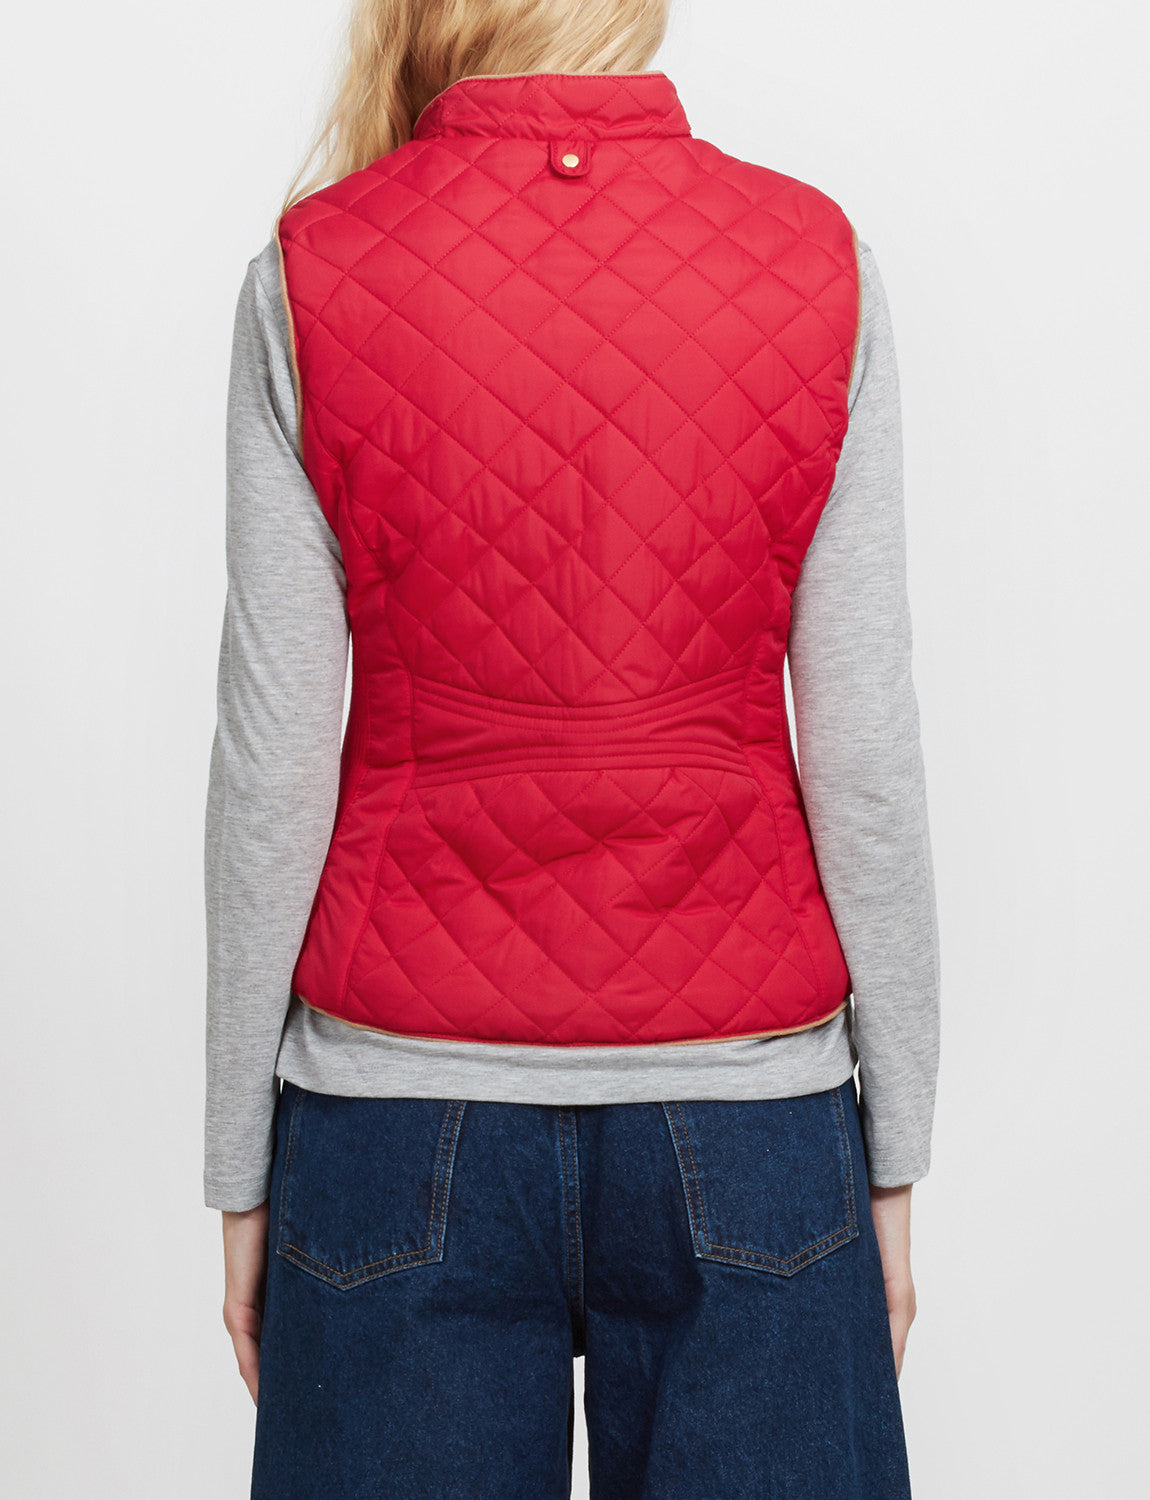 NENONA Womens Lightweight Diamond Quilted Puffer Vest Coat Winter Casual Zip Up Padded Outwear with Pockets